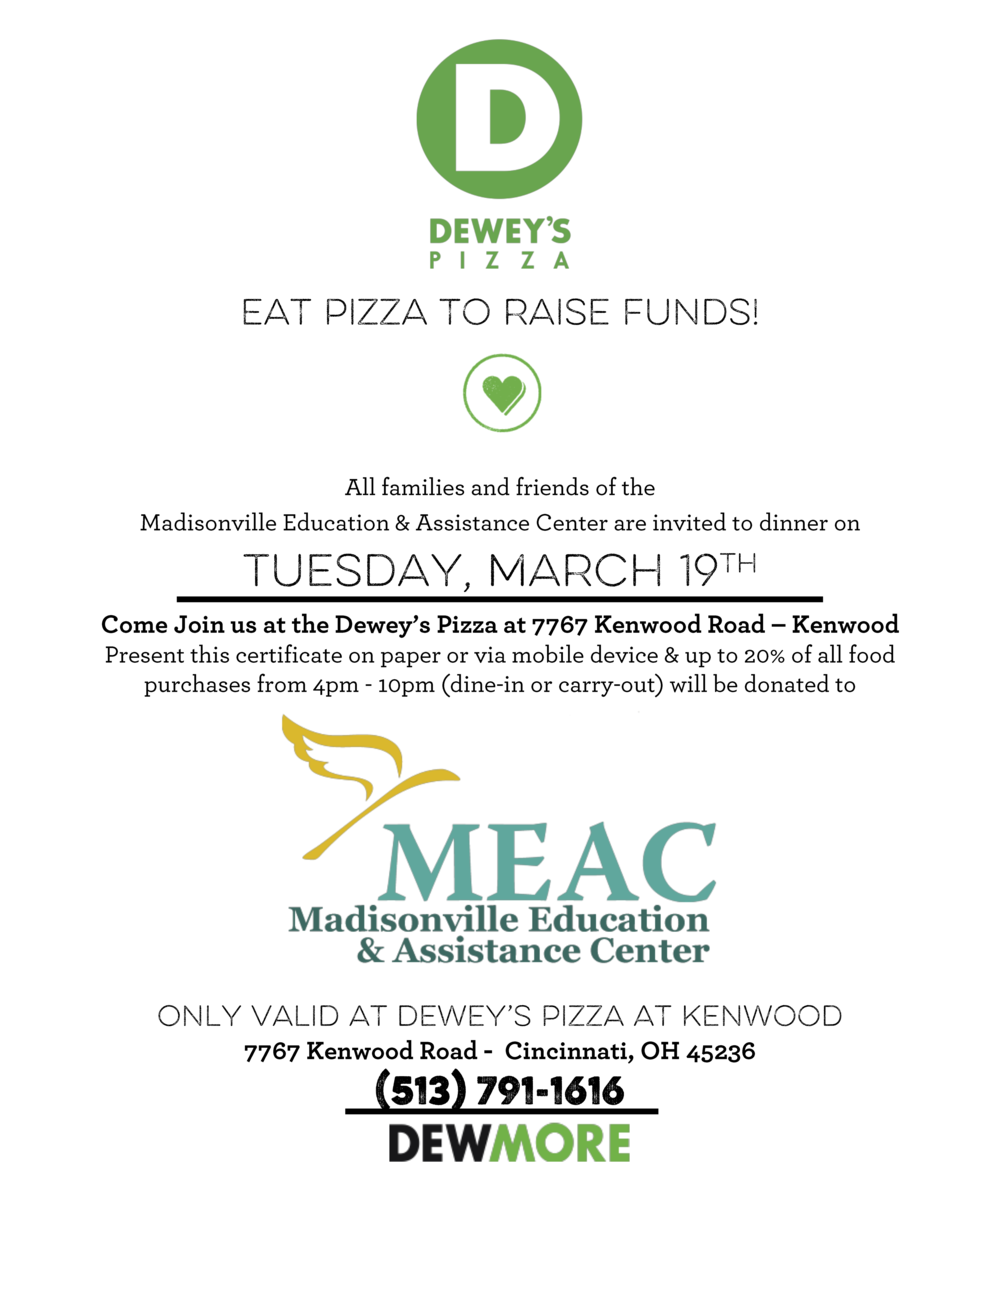 Show this flyer to your server or cashier to give 20% of the price of your meal back to MEAC!